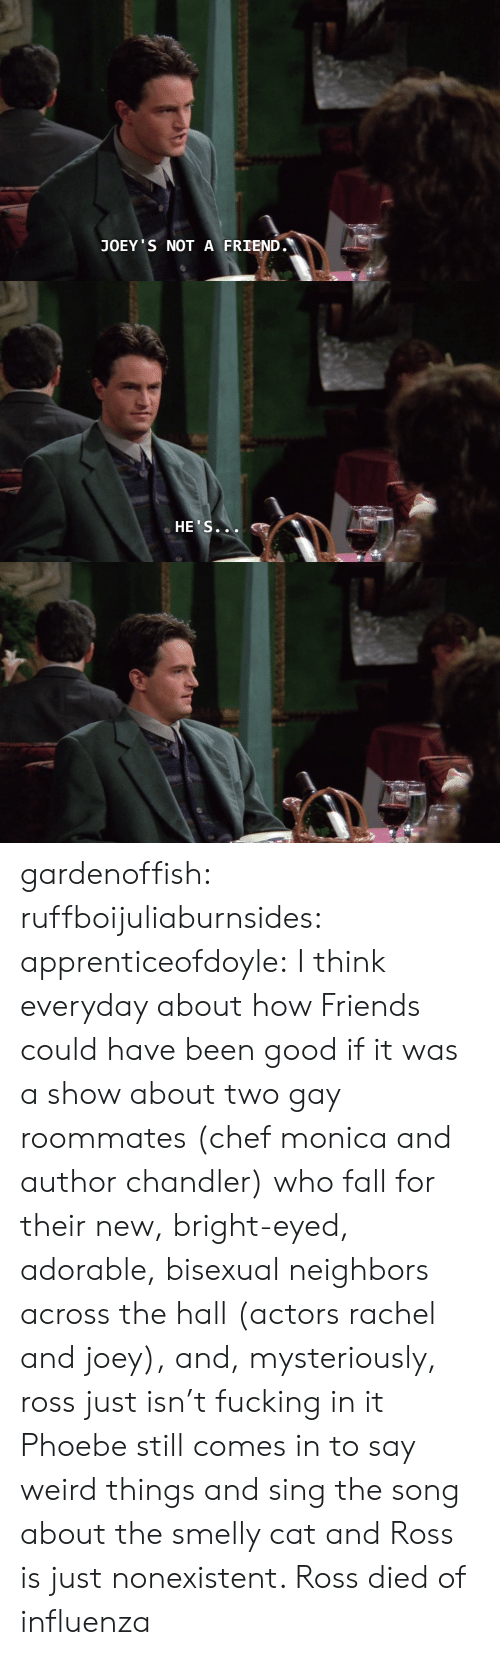 Chef: JOEY S NOT A FRIEND.   HE'S... gardenoffish: ruffboijuliaburnsides:  apprenticeofdoyle: I think everyday about how Friends could have been good if it was a show about two gay roommates (chef monica and author chandler) who fall for their new, bright-eyed, adorable, bisexual neighbors across the hall (actors rachel and joey), and, mysteriously, ross just isn't fucking in it Phoebe still comes in to say weird things and sing the song about the smelly cat and Ross is just nonexistent.    Ross died of influenza